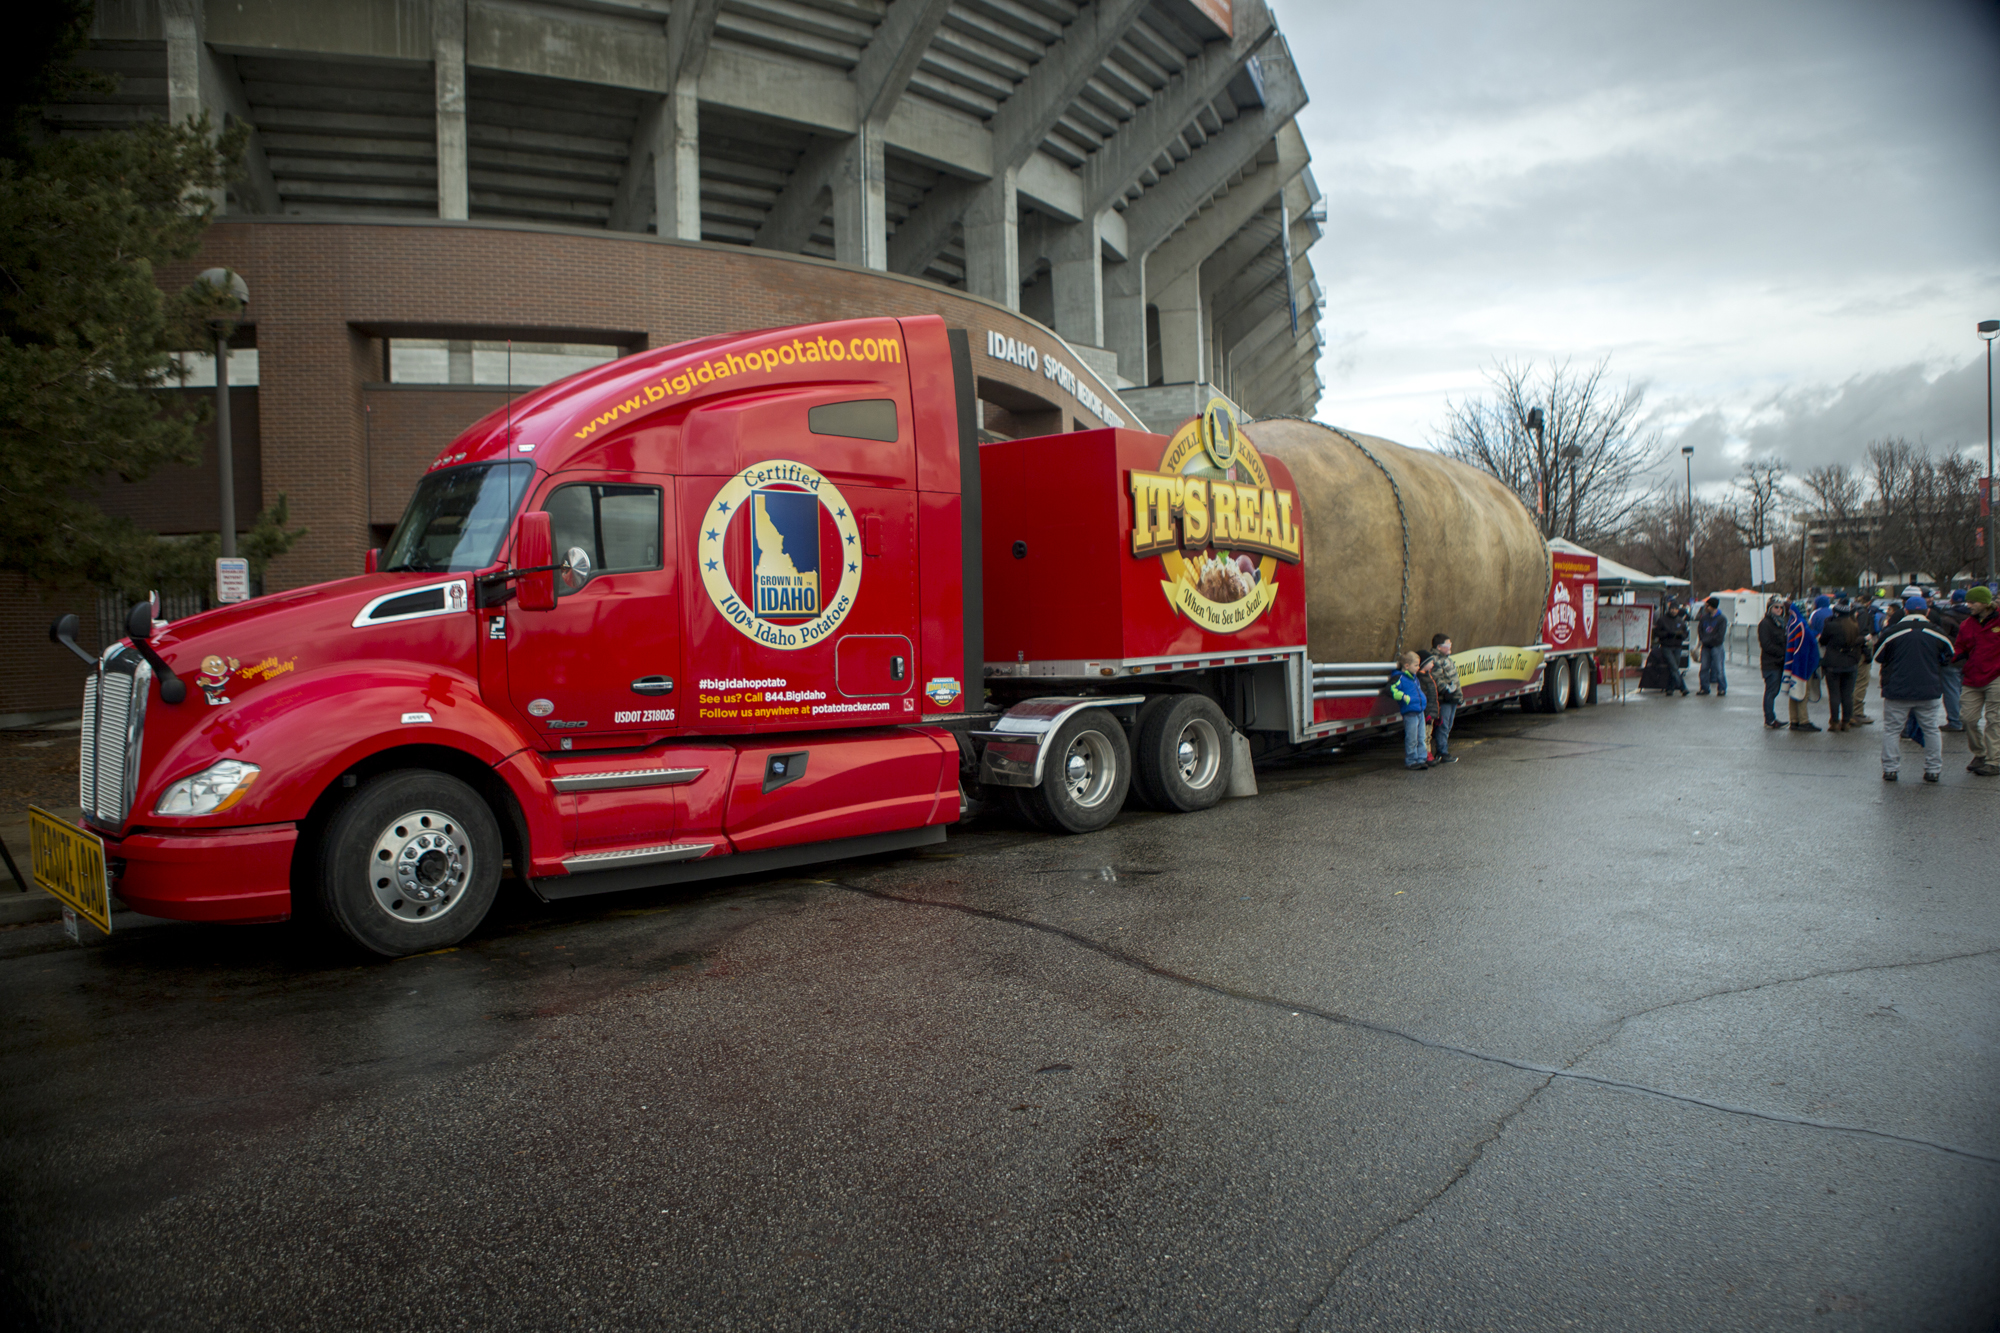 United_Heritage-Potato_Bowl-Potato_Truck